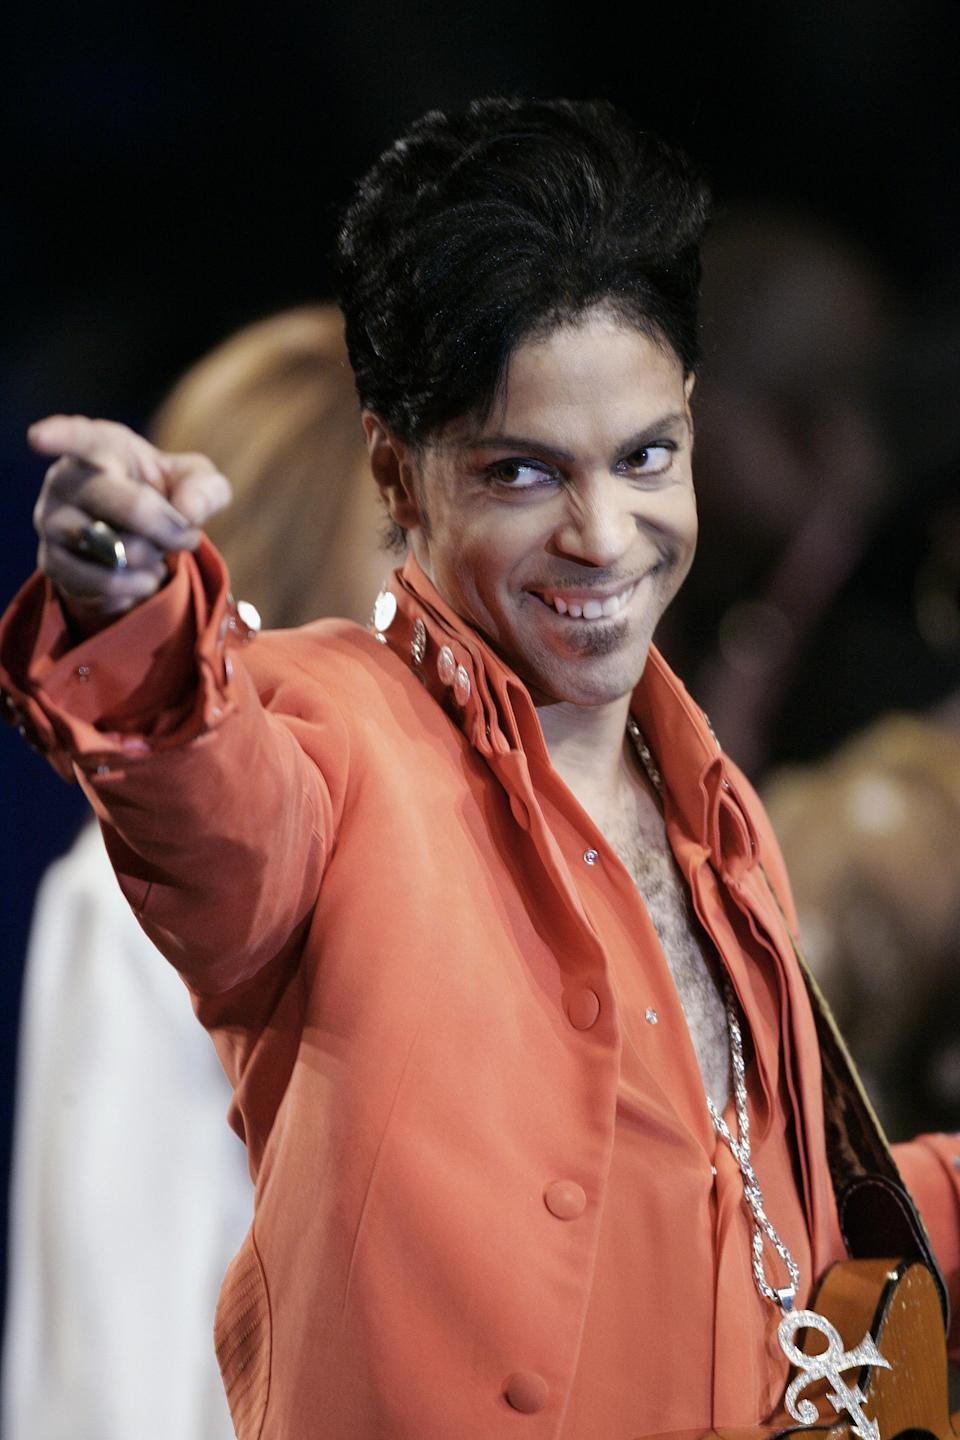 Recording star Prince performs during a press conference on February 1, 2007 at the Super Bowl media center on Miami Beach, Florida (AFP Photo/Robert Sullivan)